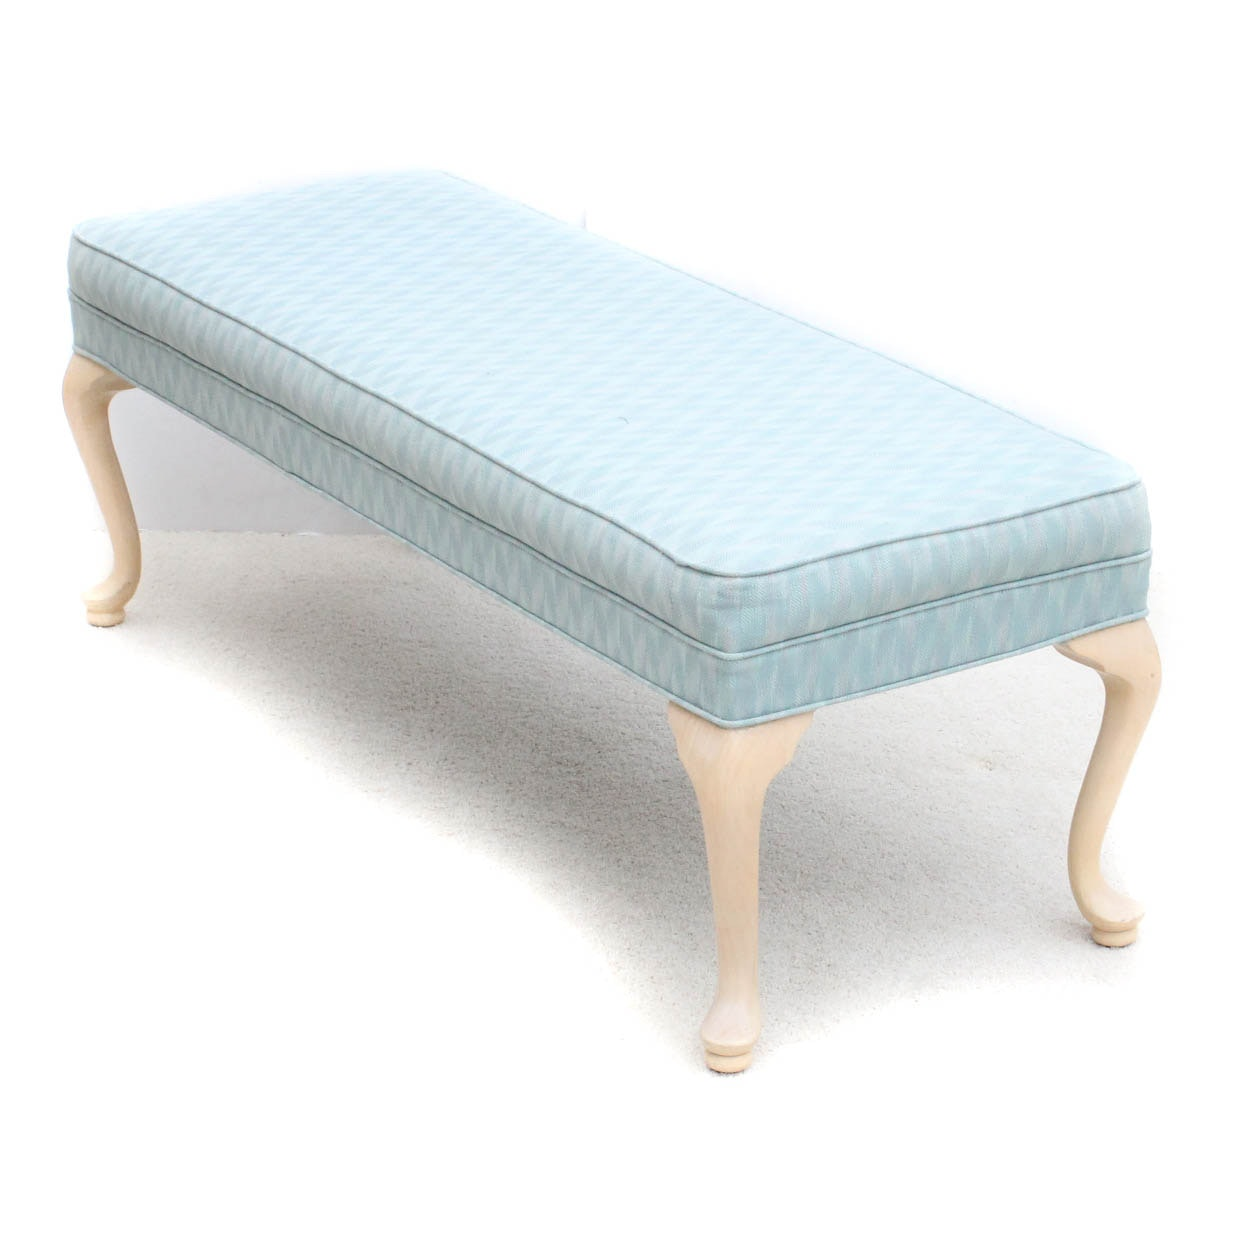 Upholstered Wooden Bench